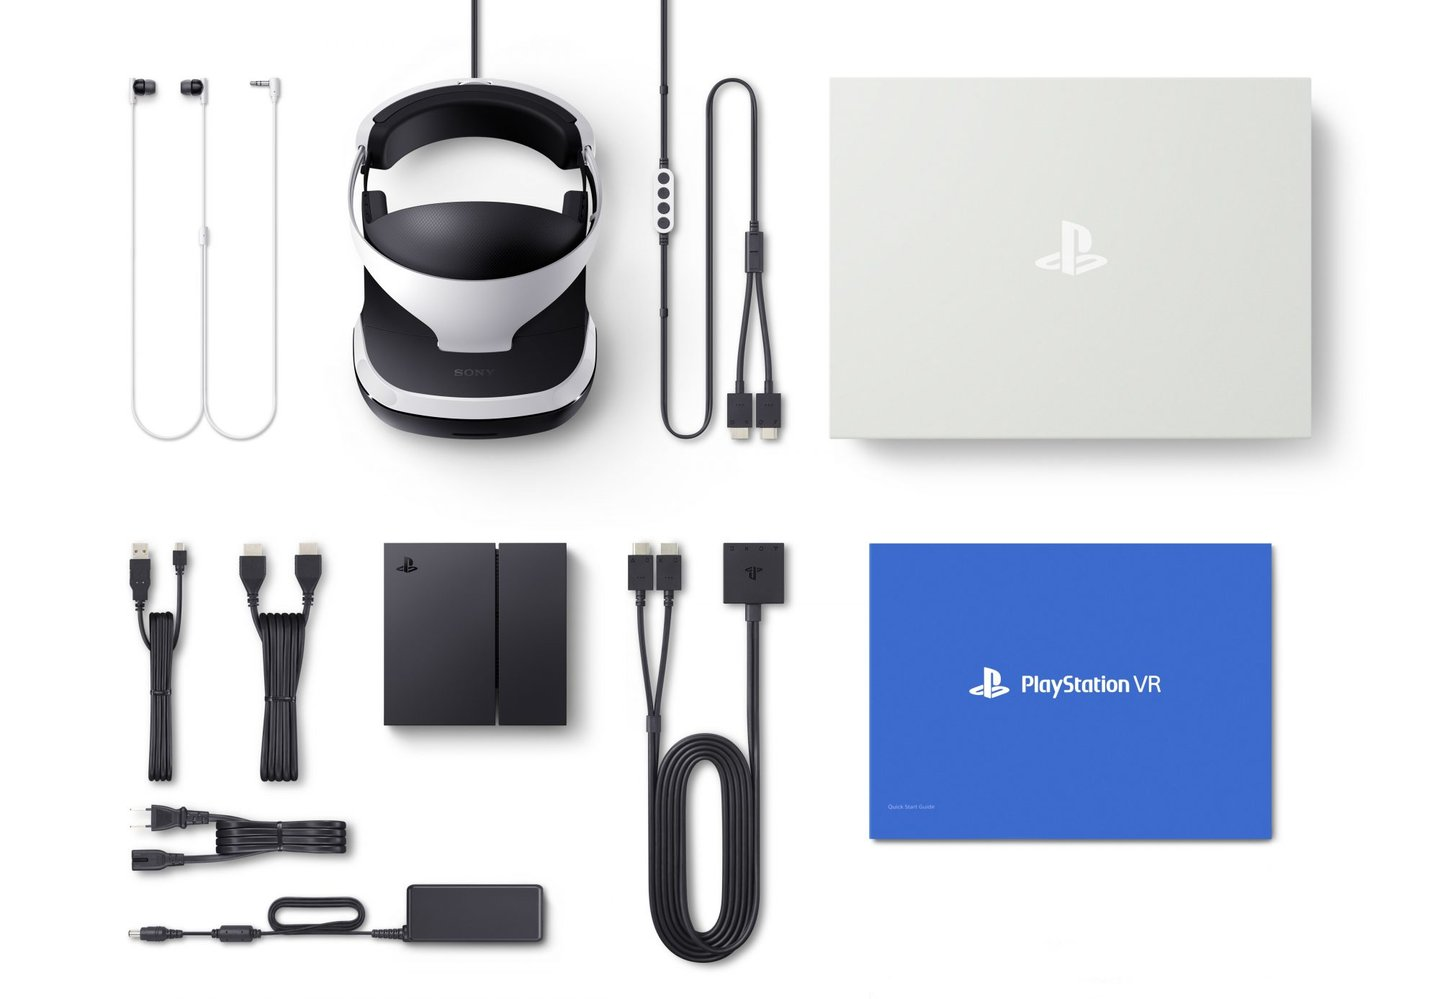 playstation_vr_unboxed_0